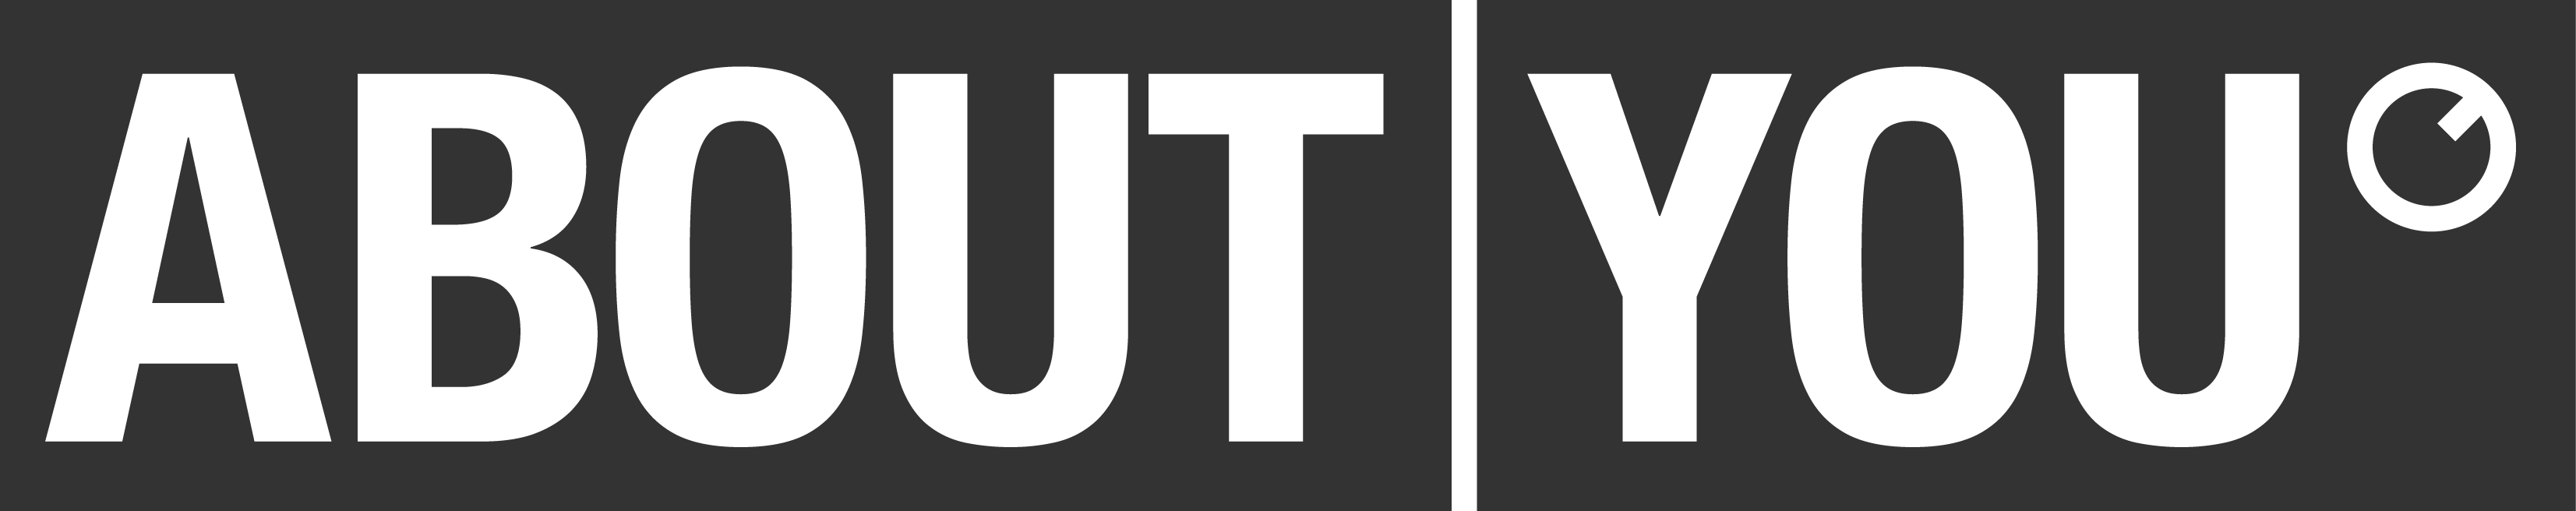 File:ABOUT YOU Logo.png - Wikimedia Commons